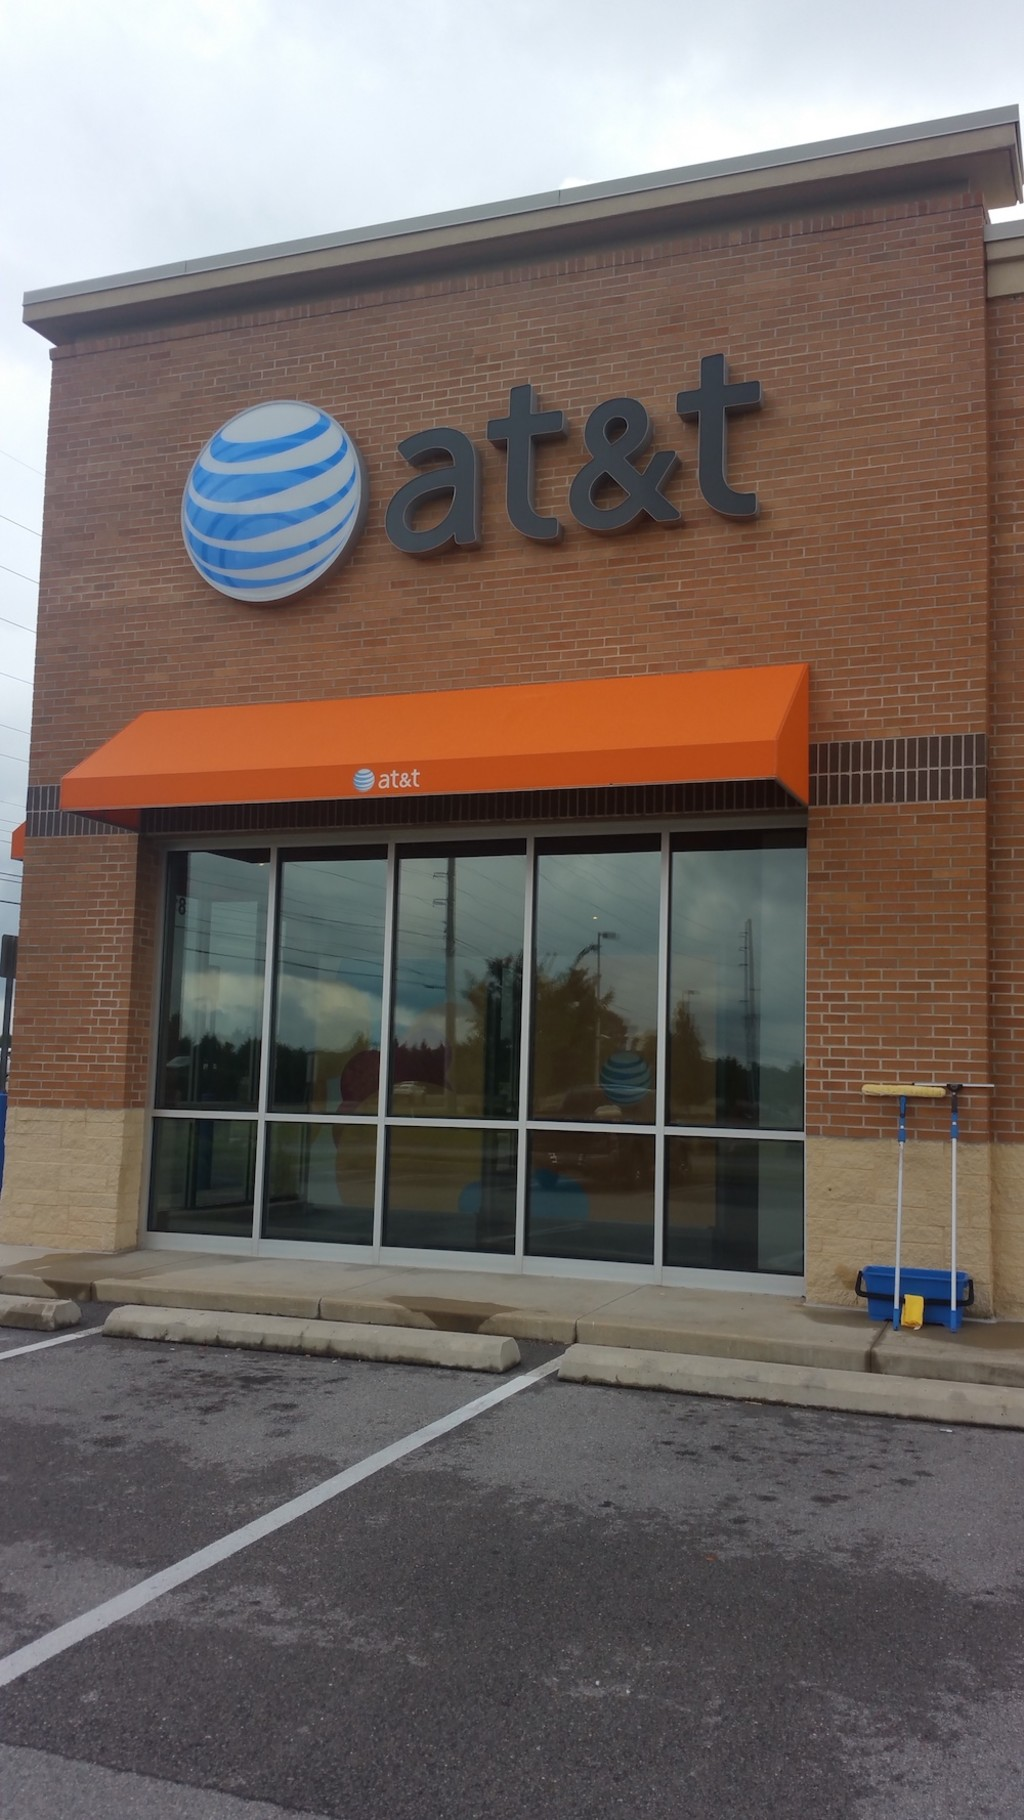 Sparkling Cleaning - at&t